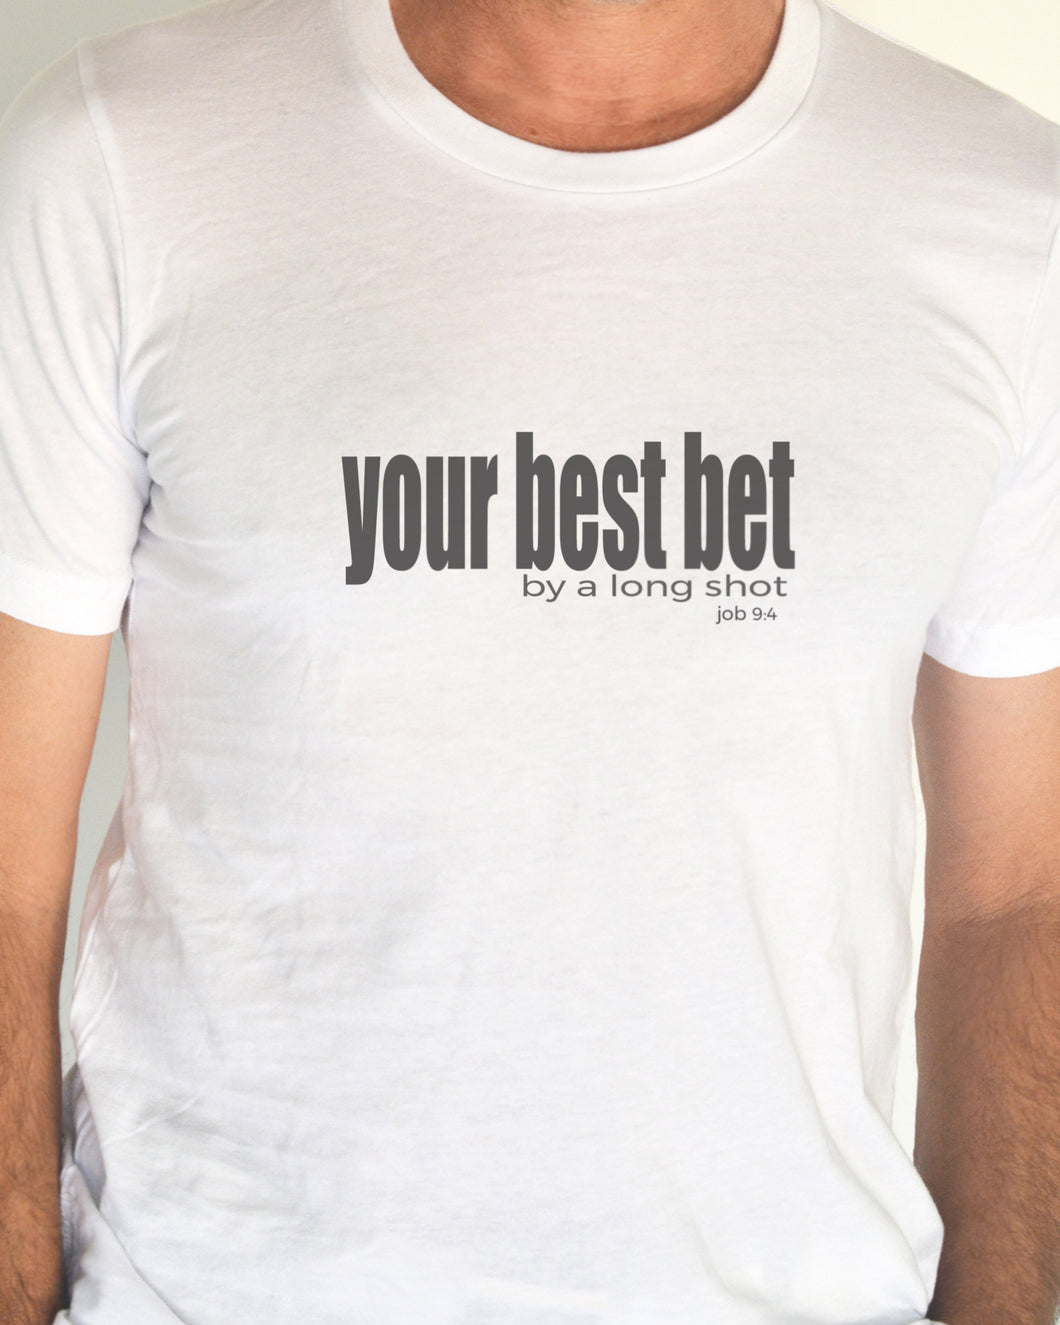 Your Best Bet (Unisex T-shirt) with 2-sided design in 6 colors